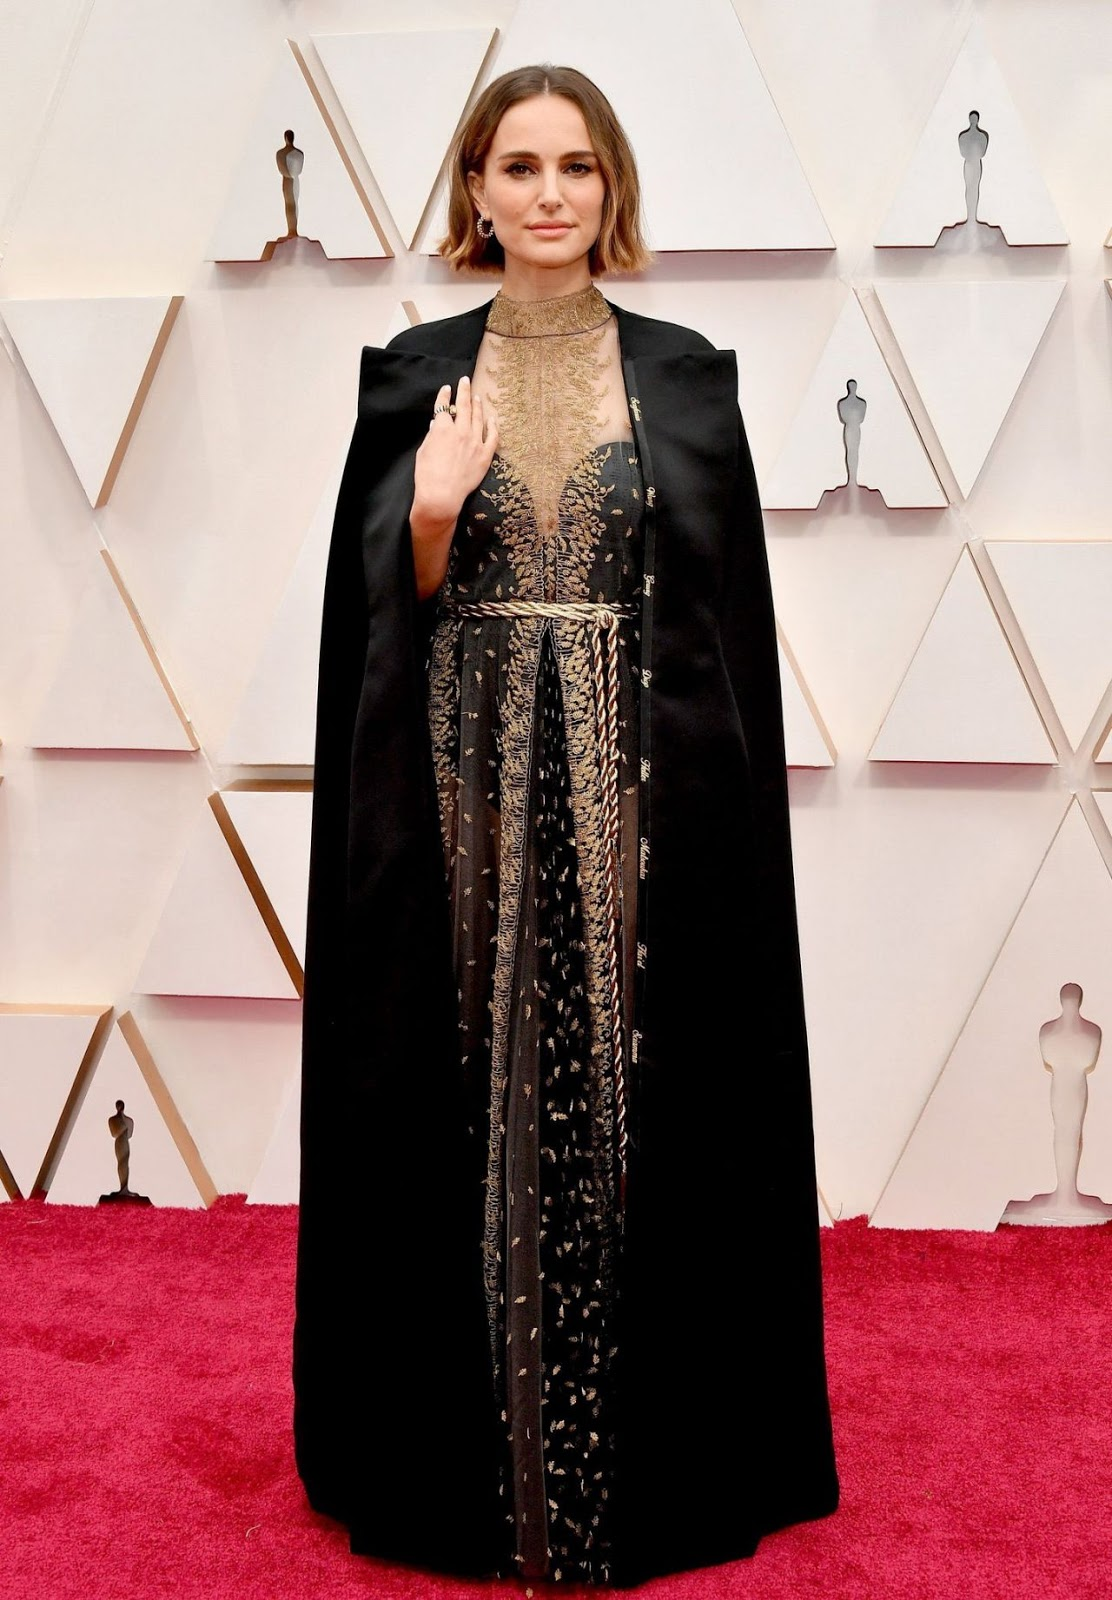 Natalie Portman shows her support for the female directors snubbed by the Oscars by wearing a Dior cape embroidered with the names of every woman who wasn't nominated including Greta Gerwig and Lulu Wang